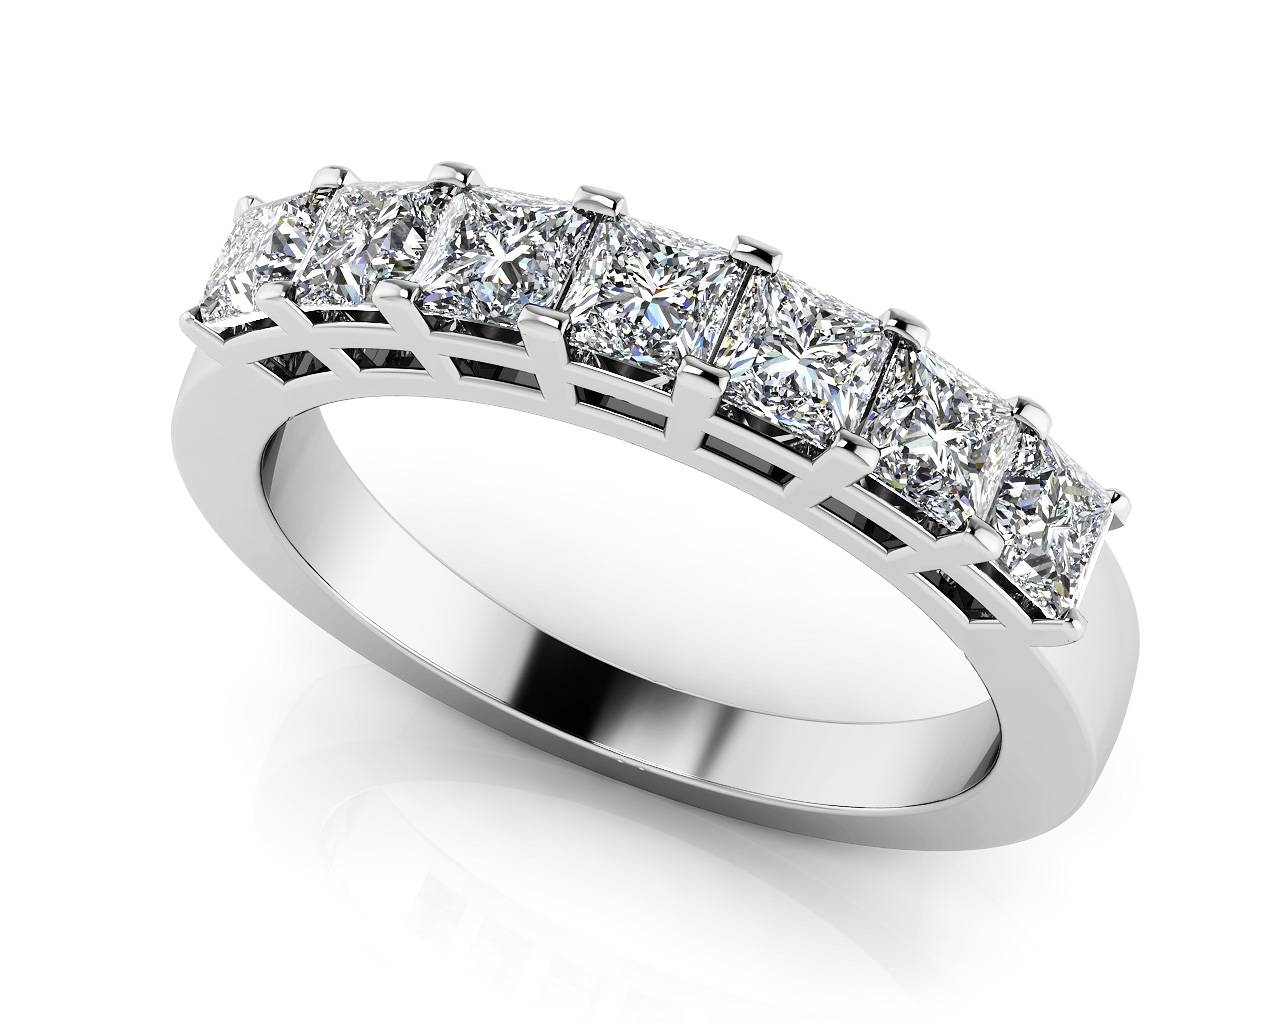 Design Your Own Diamond Anniversary Ring & Eternity Ring Regarding 2017 Diamonds Wedding Anniversary Rings (View 18 of 25)